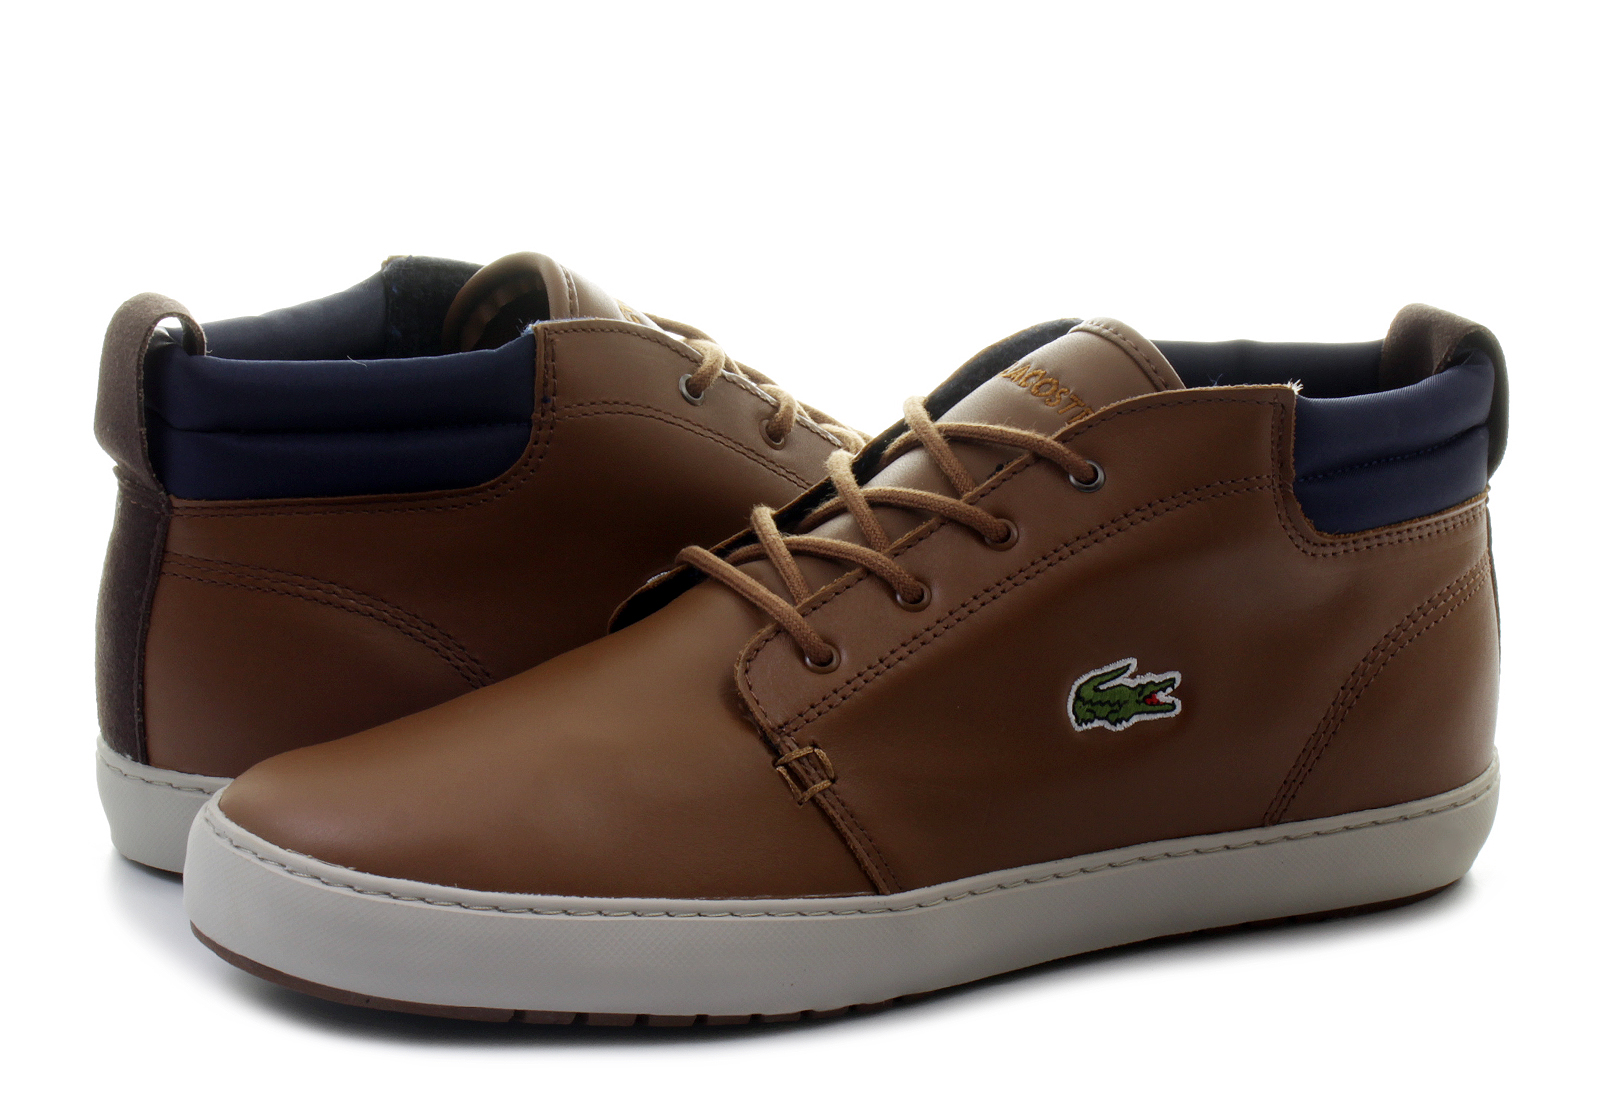 Lacoste Cipő - Ampthill Terra - 173CAM0002-078 - Office Shoes ... 7f256735ea